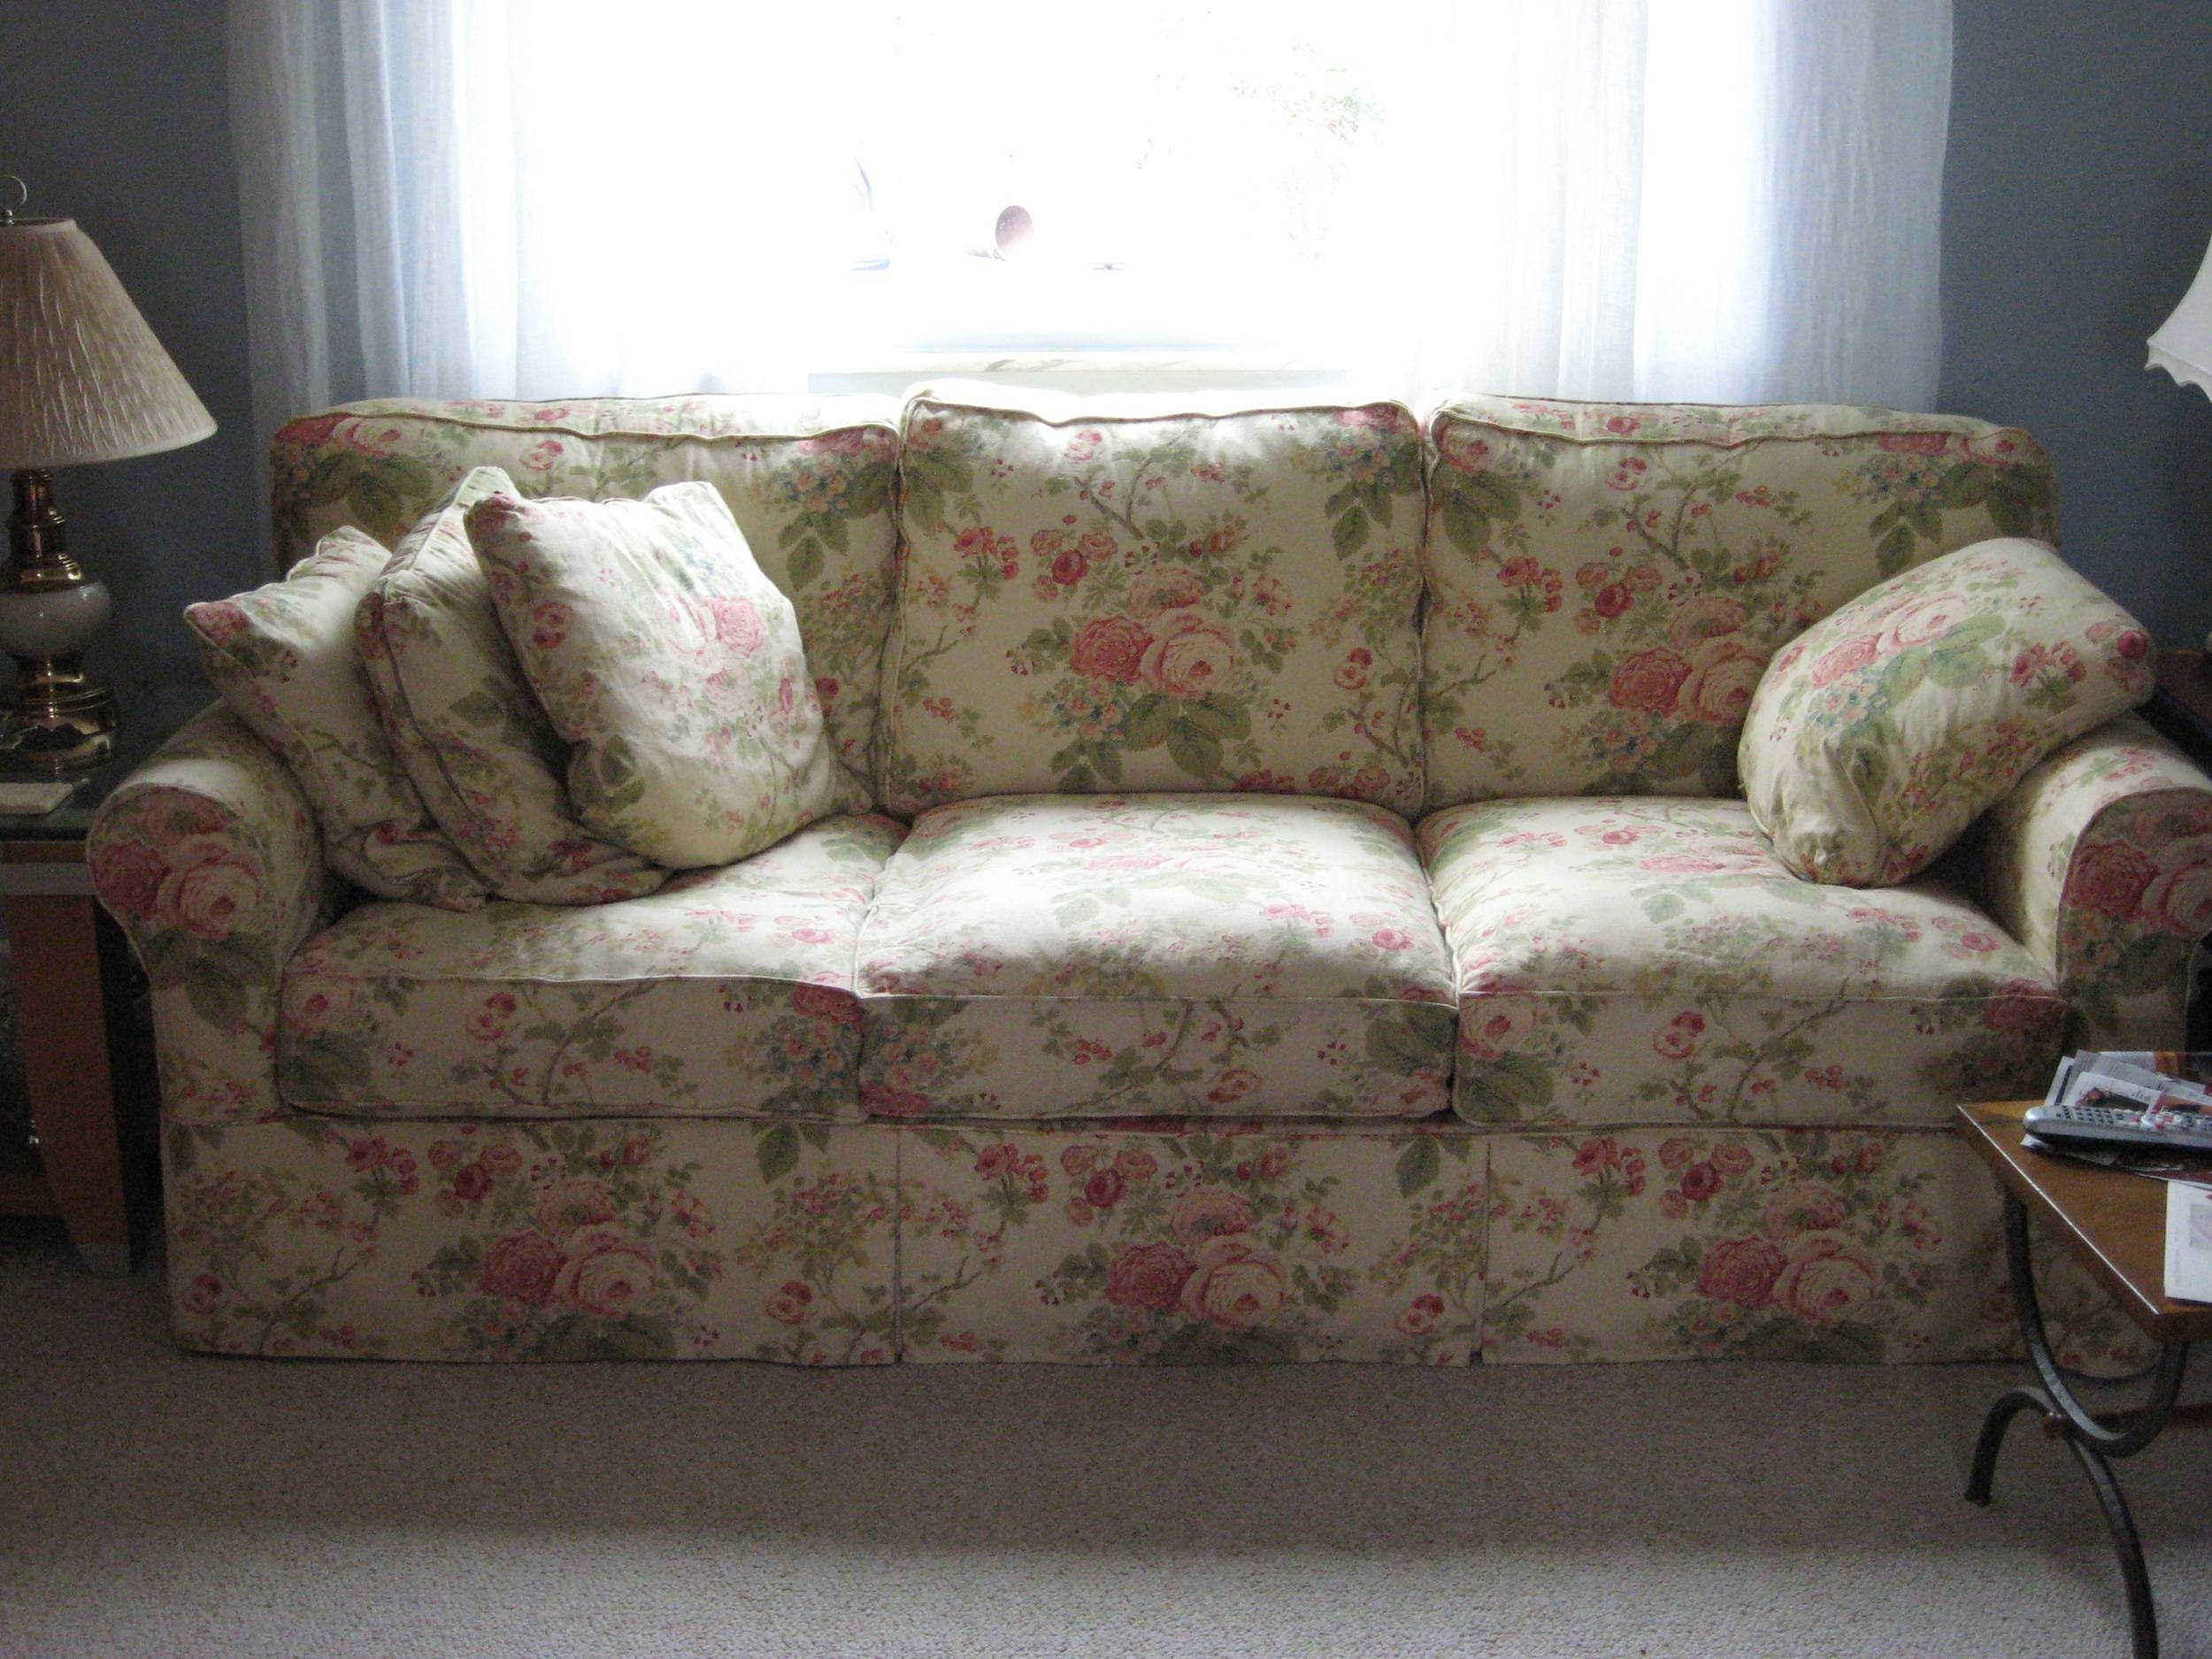 Wondrous Unique Couch Covers With Classic Floral Sofas Motif And for Floral Sofas (Image 15 of 15)